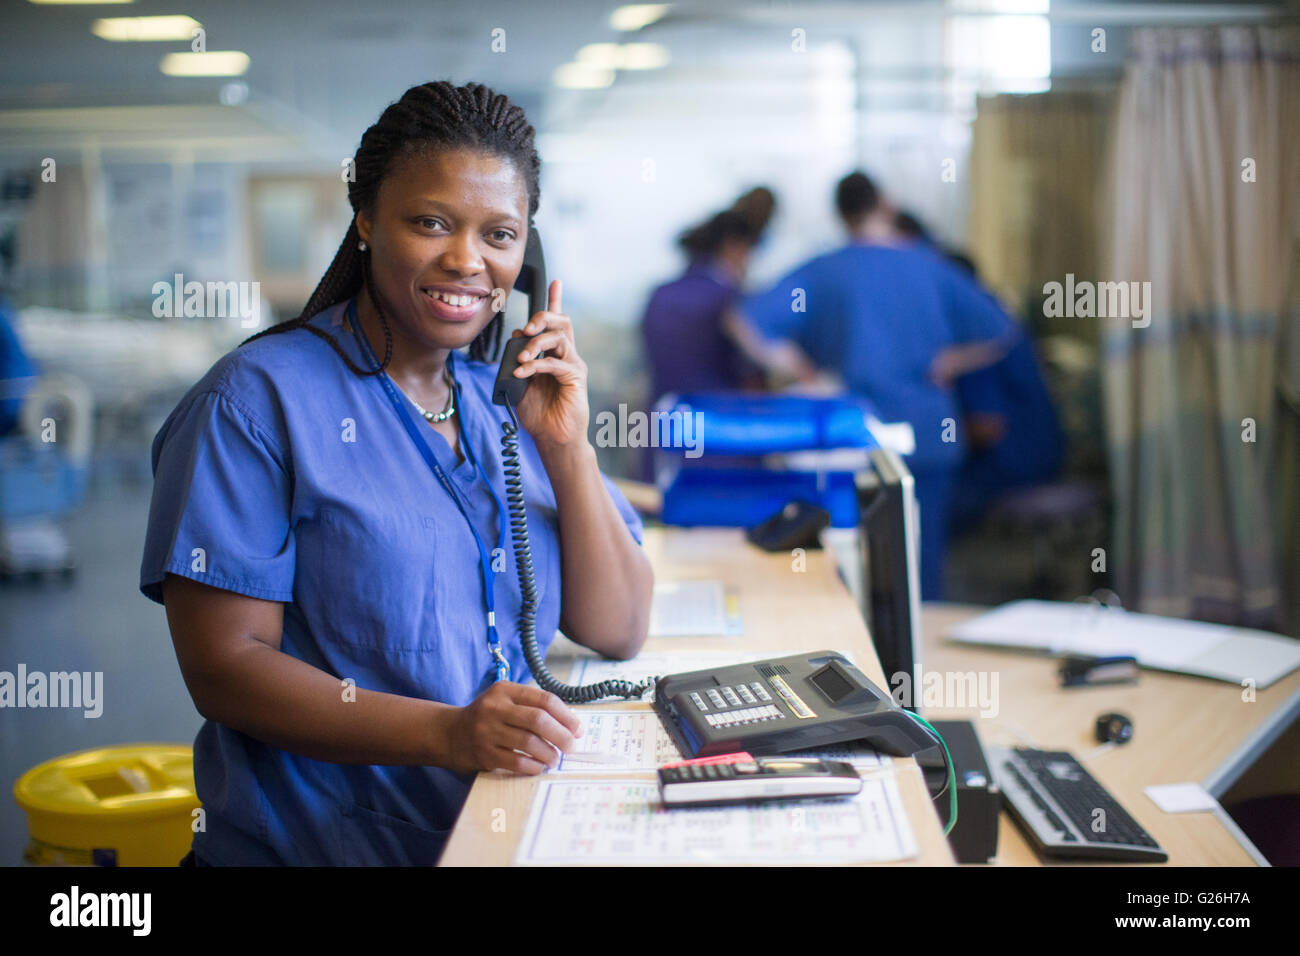 Hospital nurse at a workstation in a ward answering enquiries and checking medical records - Stock Image